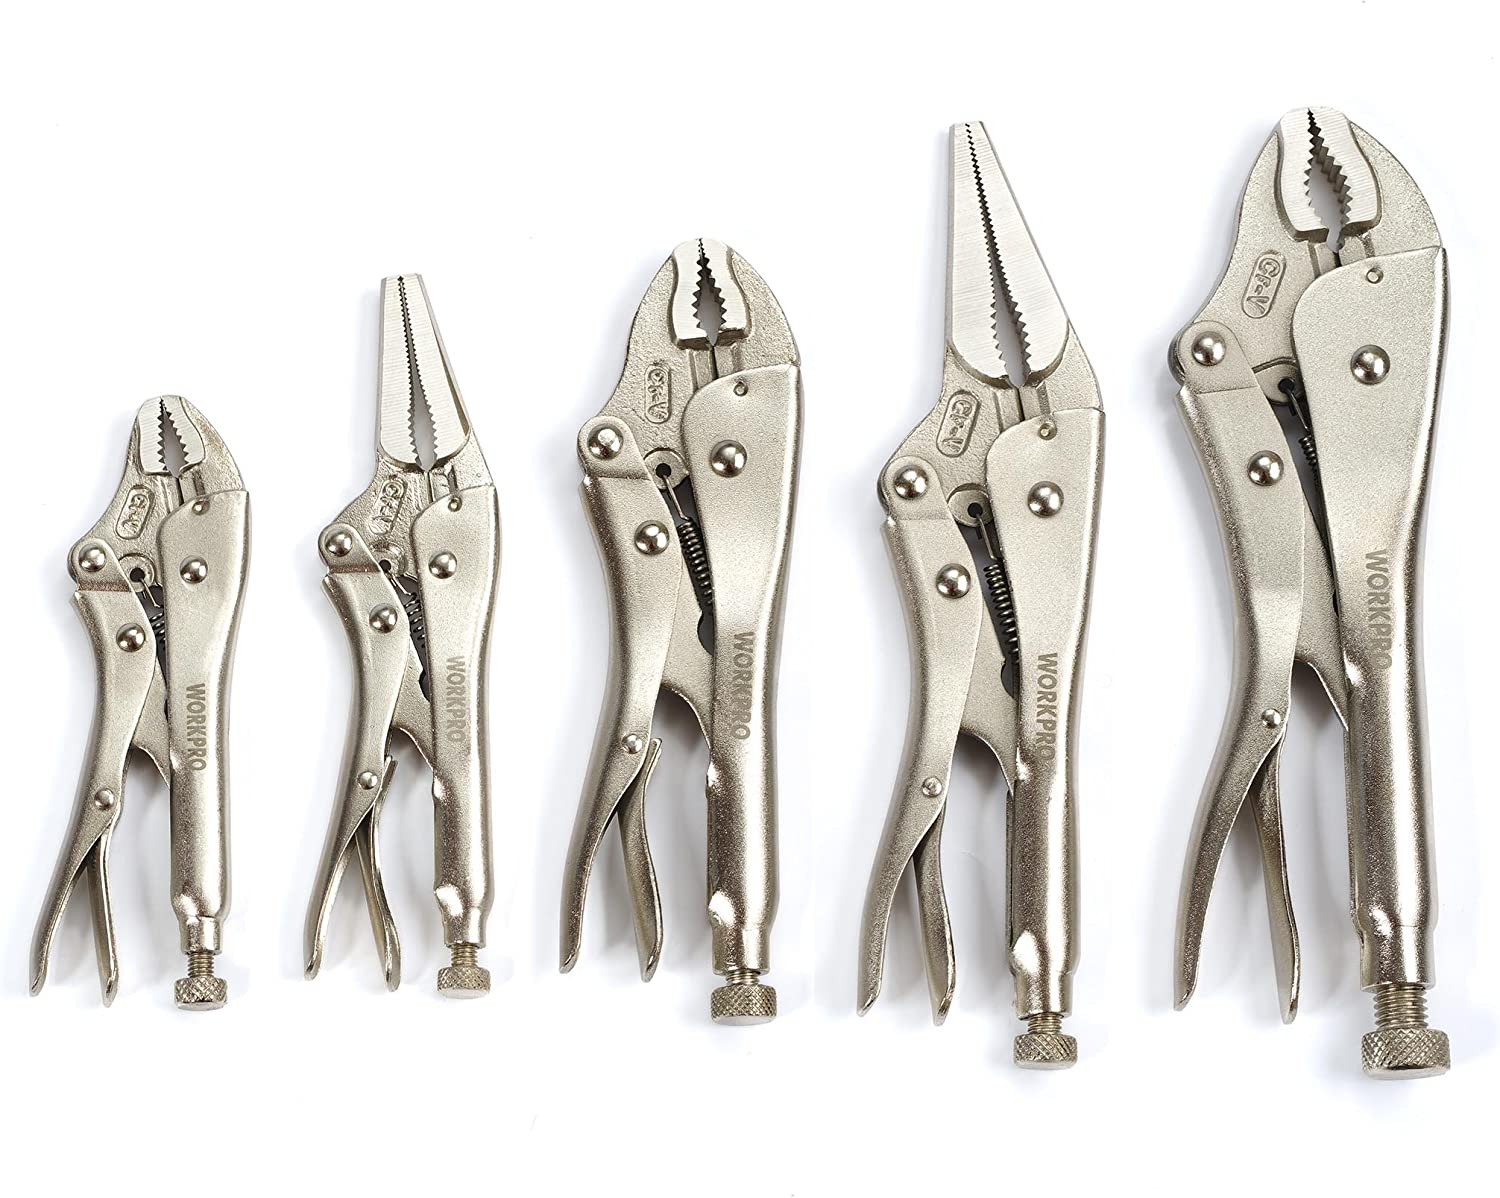 WORKPRO 5-Piece Locking Pliers Set(5/7/10 inch Curved Jaw Pliers,6.5/9 inch Long Nose Pliers), W001316A